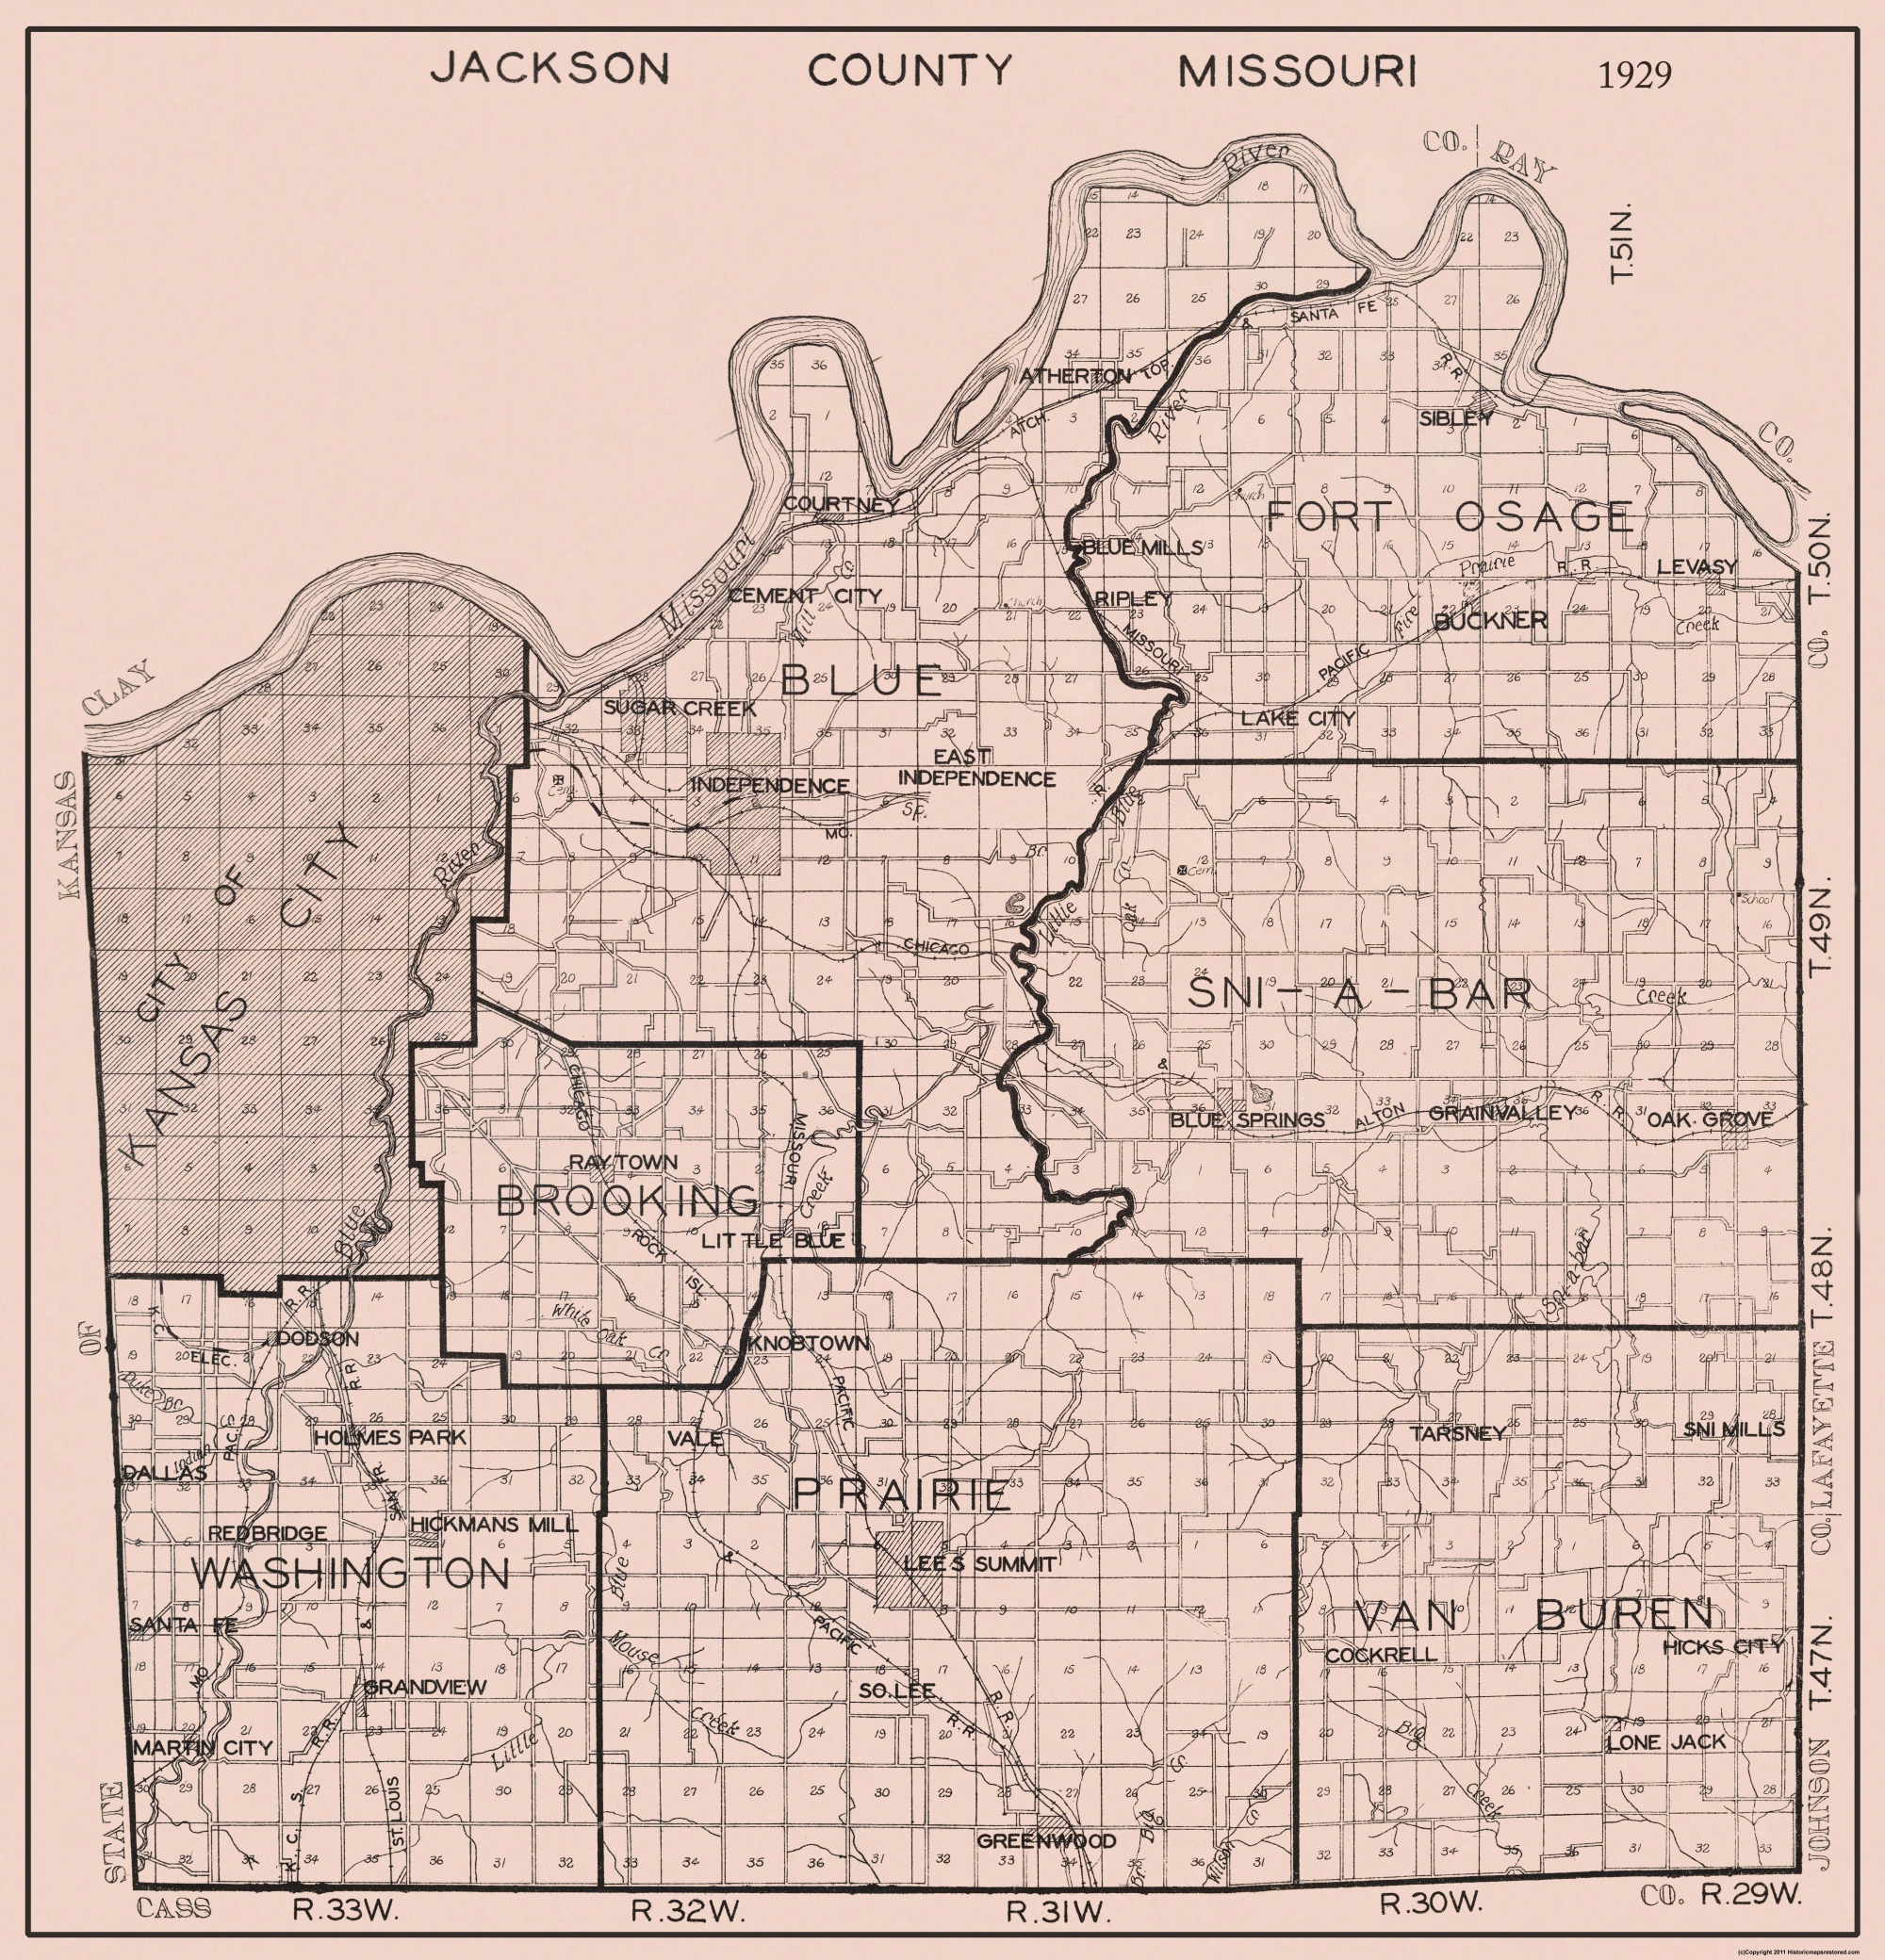 Old County Map Jackson Missouri 1929